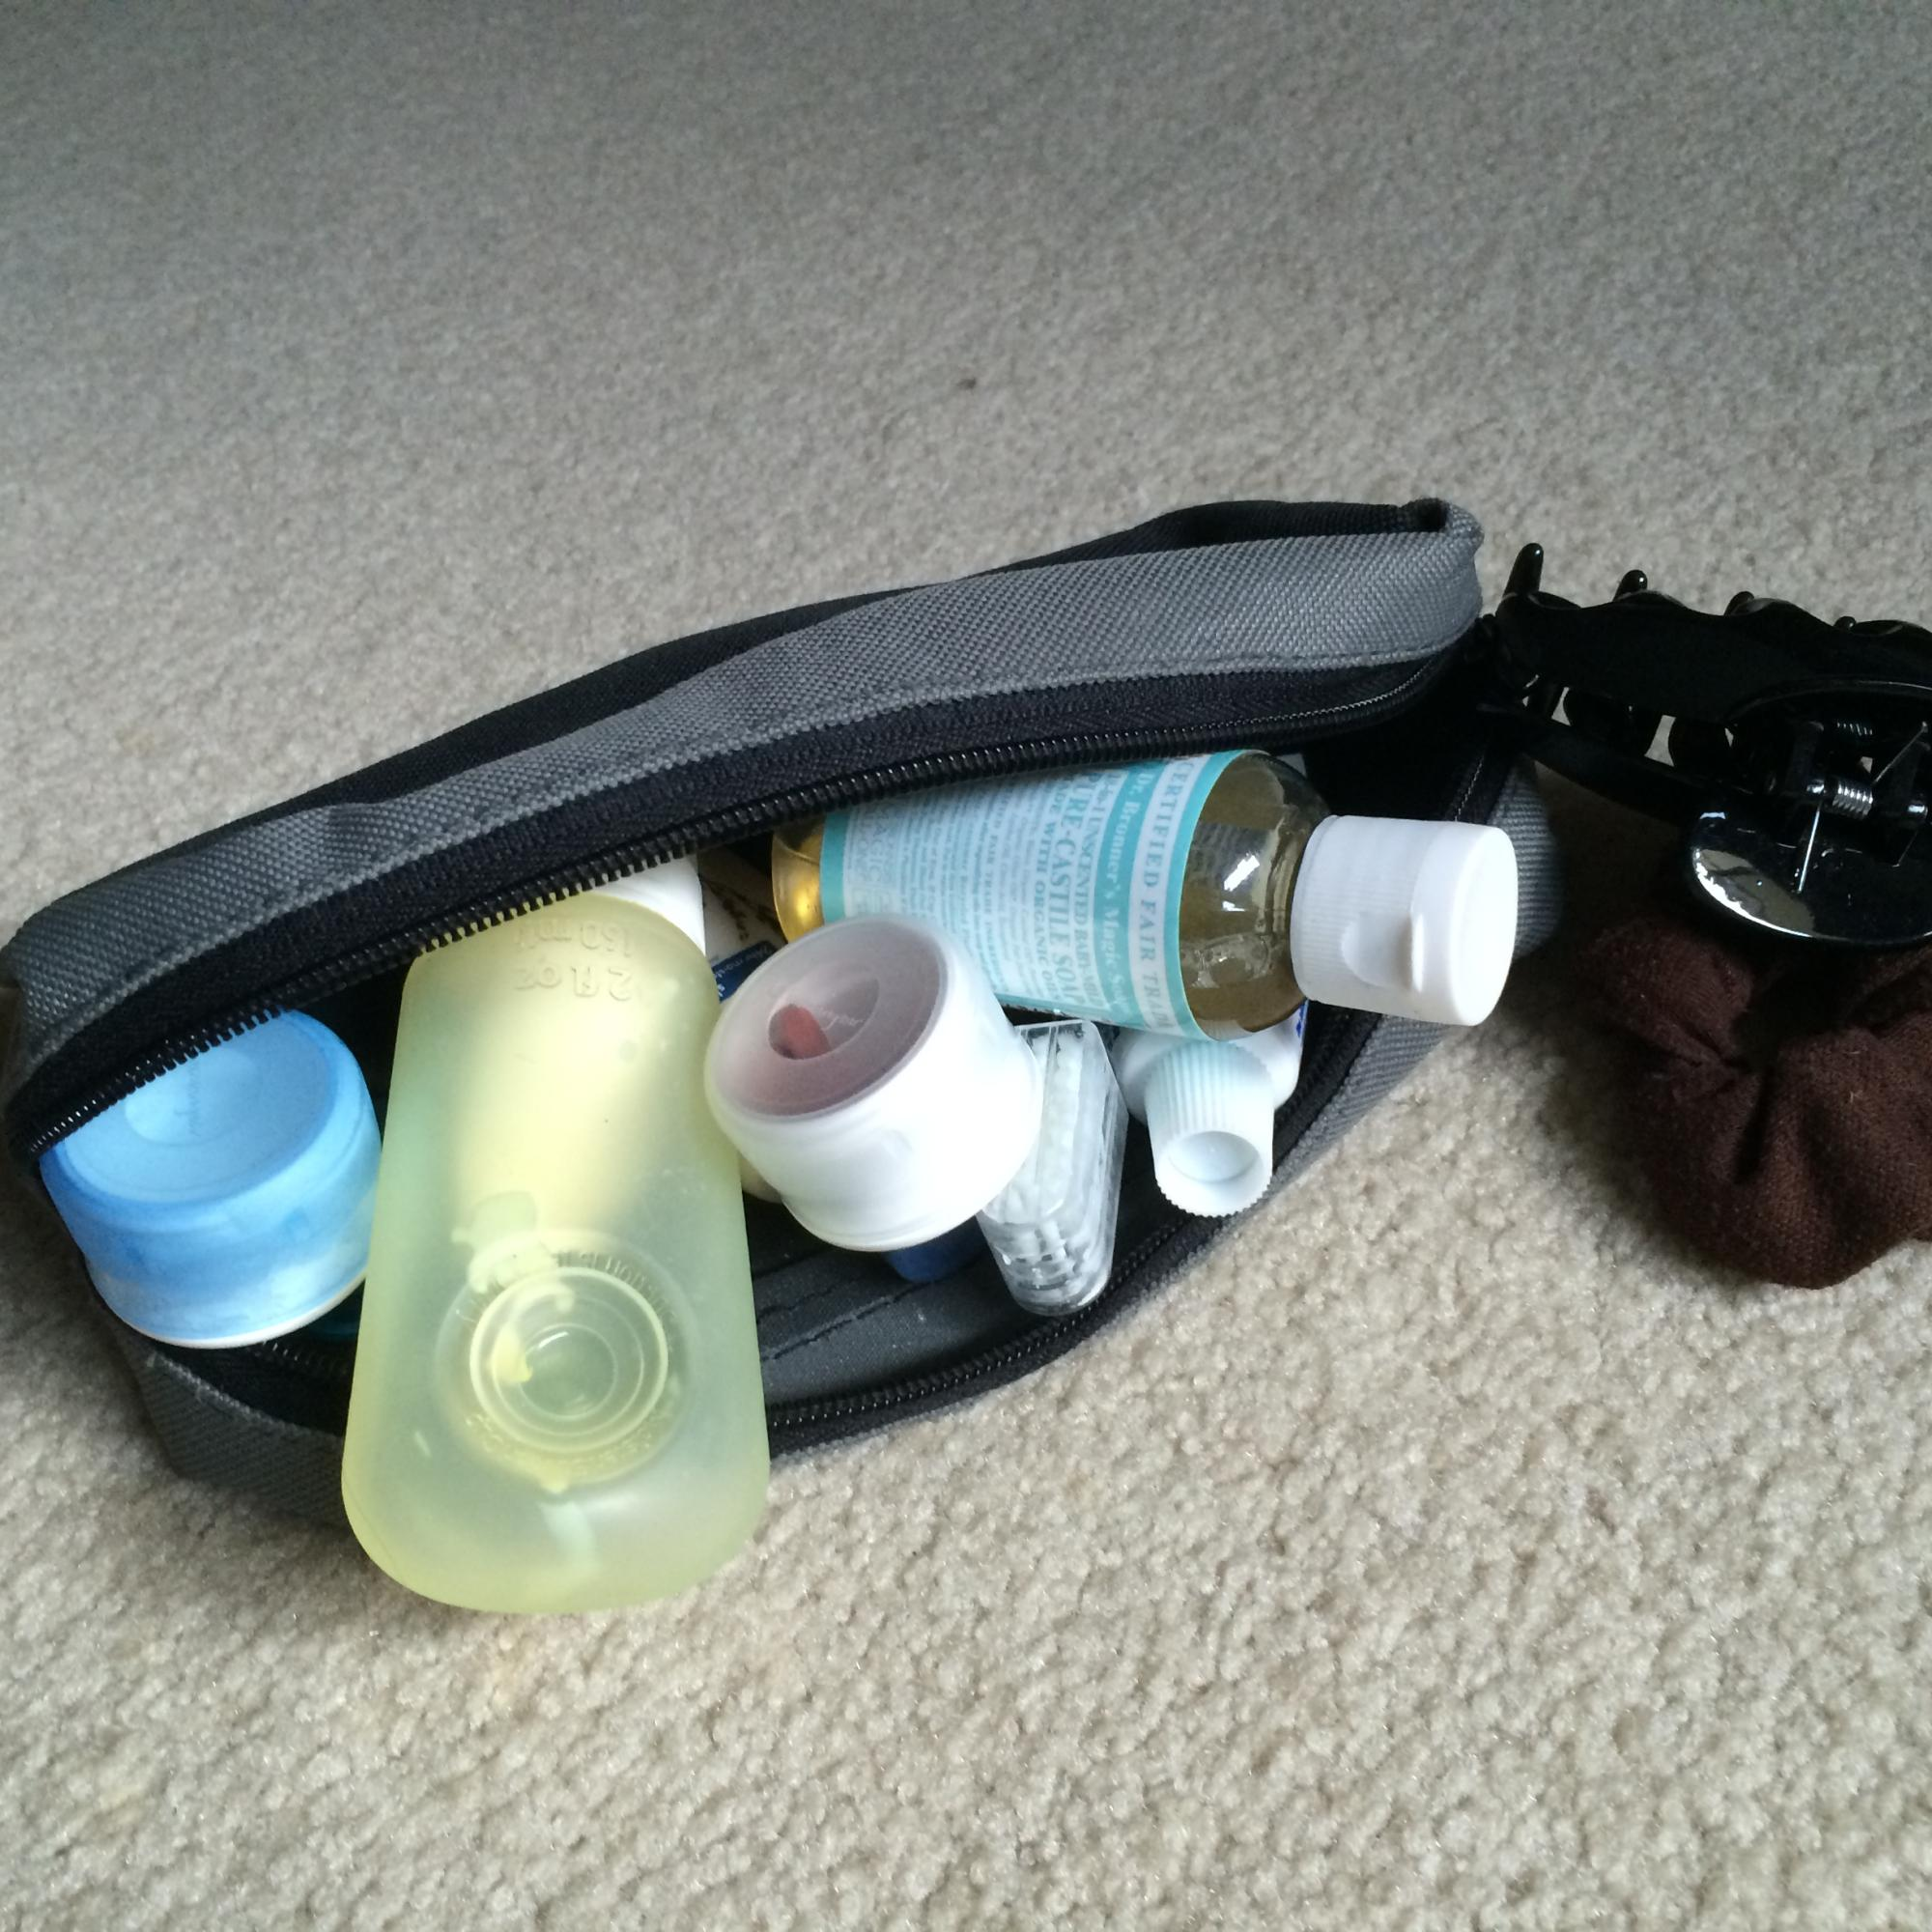 Woman's backpacking hygiene kit containing biodegradable soap, toothbrush, toothpaste, and face cream